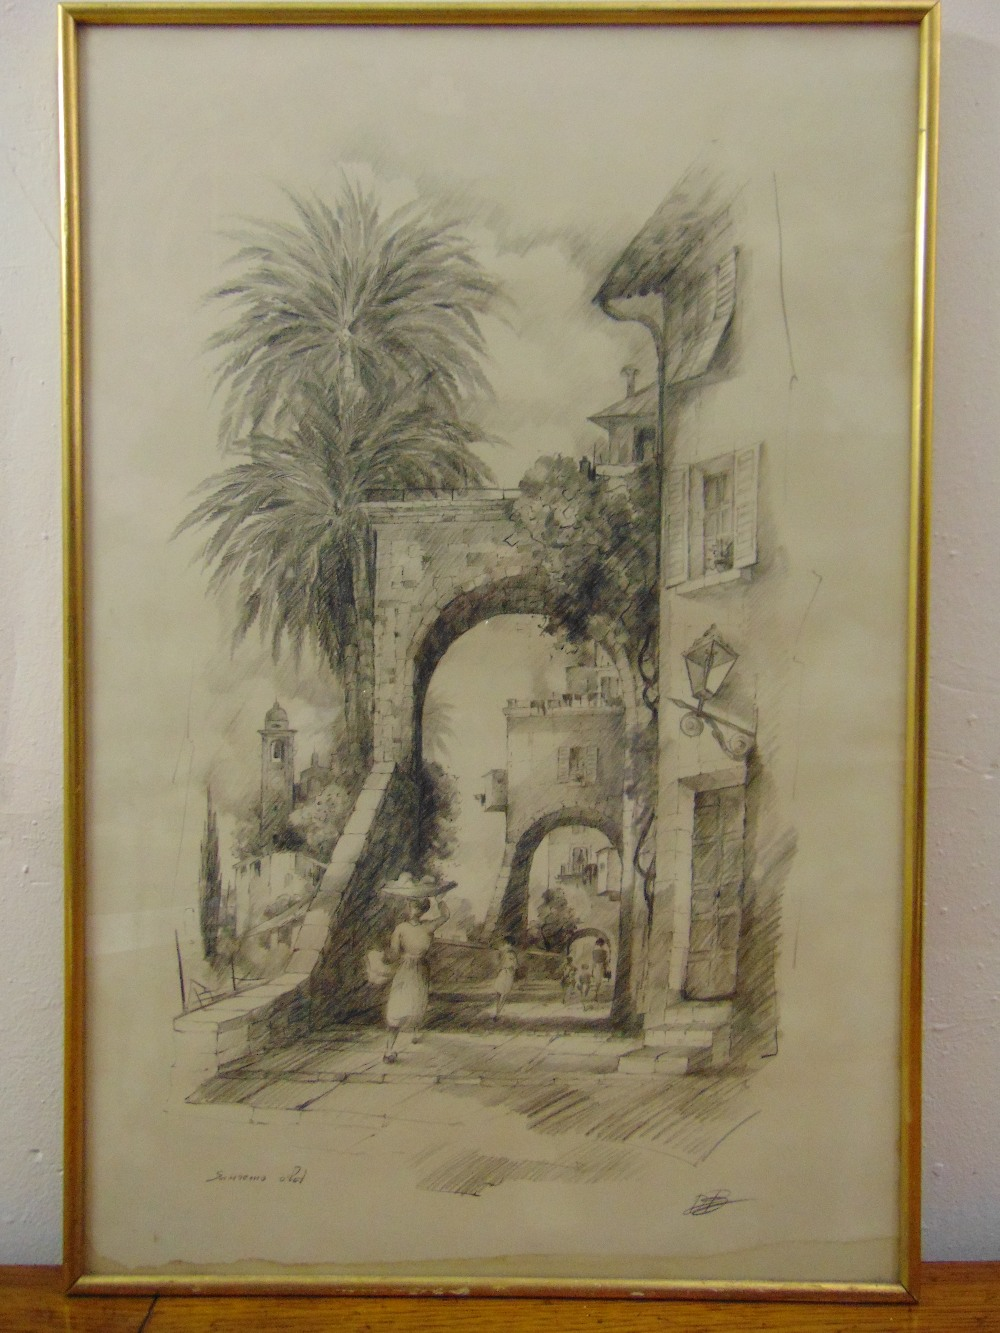 Lot 37 - A framed and glazed pencil drawing of San Remo indistinctly signed bottom right, 63 x 38cm